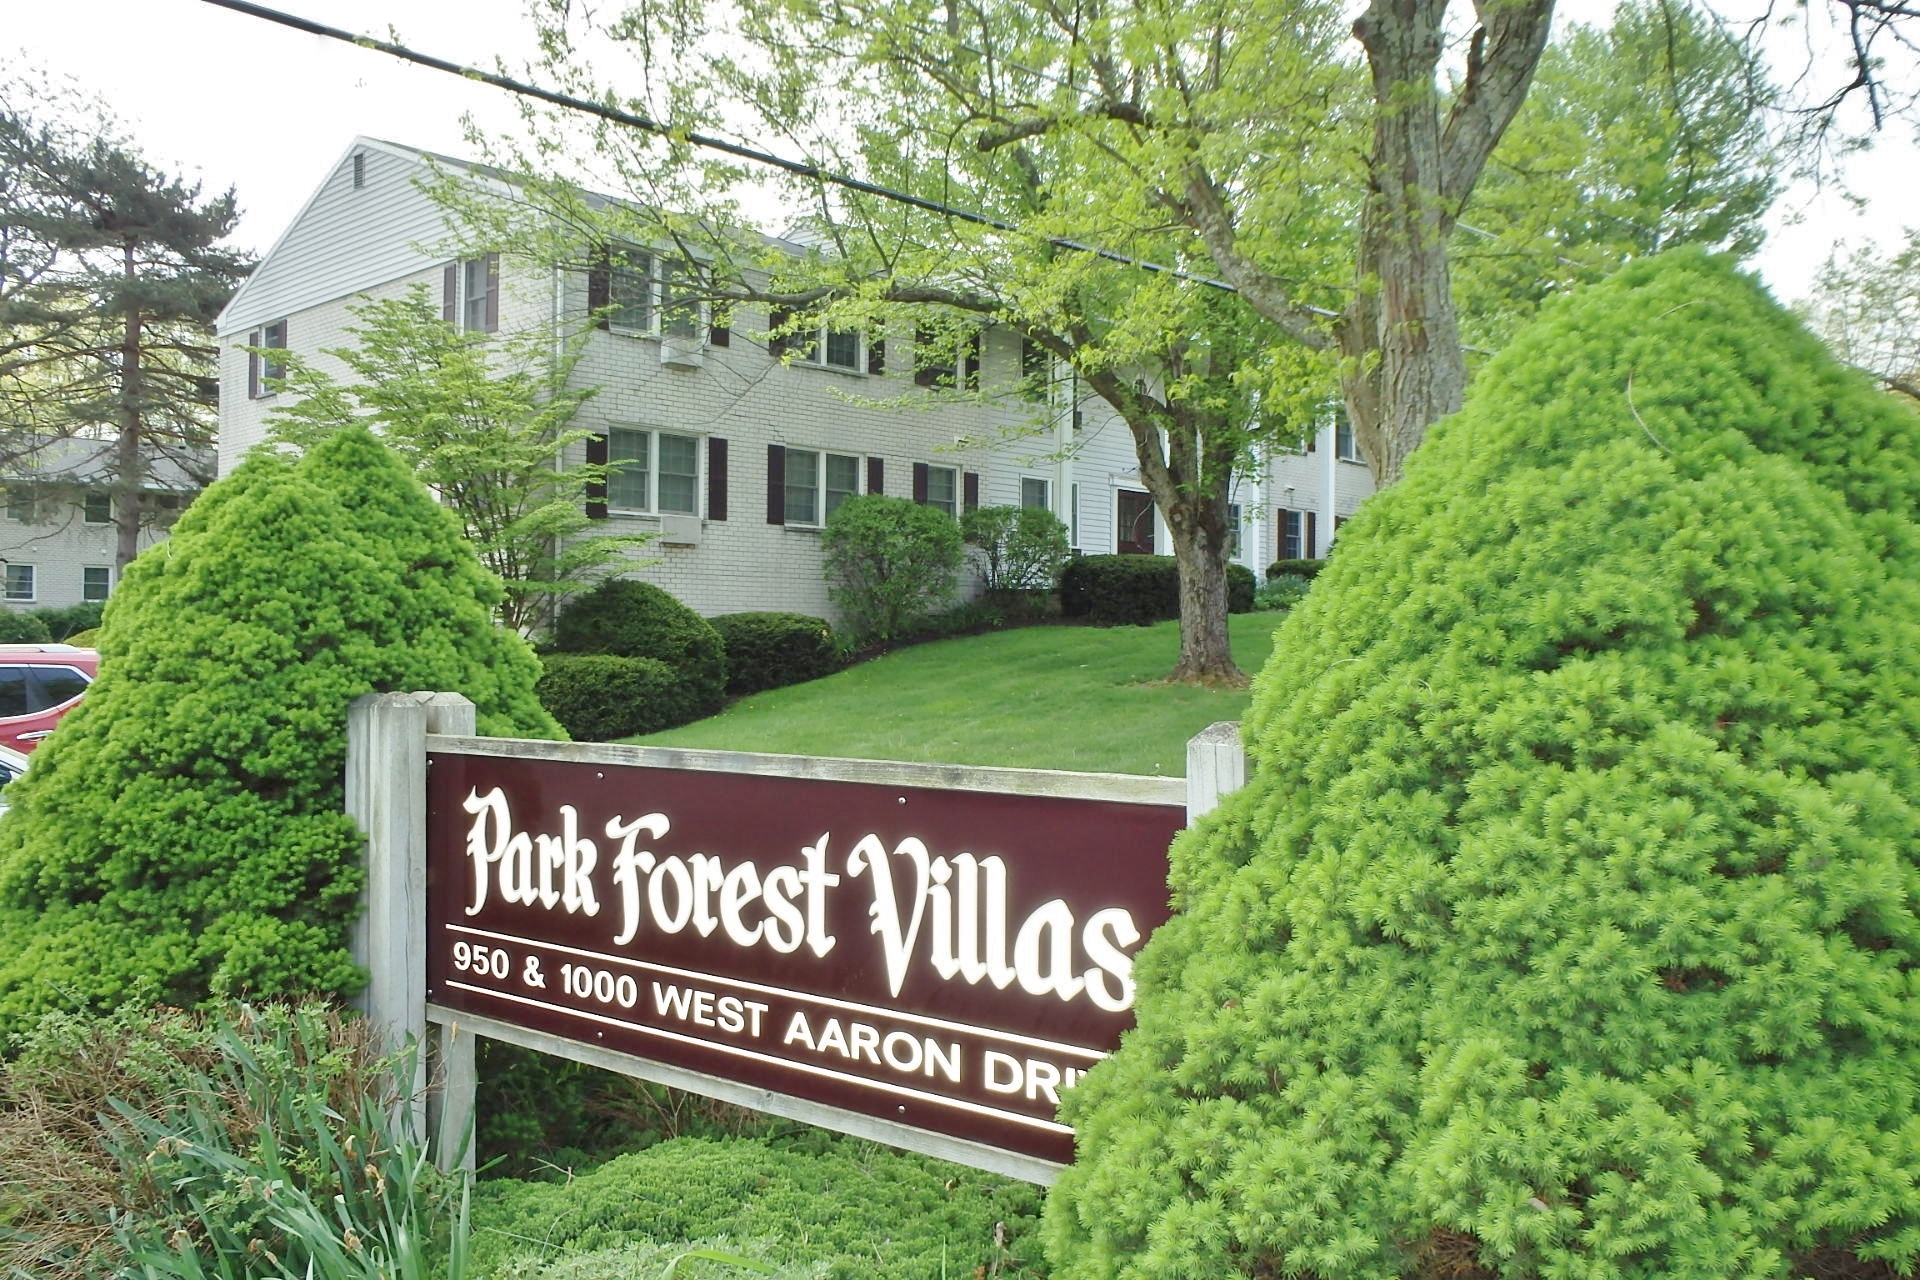 Park Forest Villas Sign